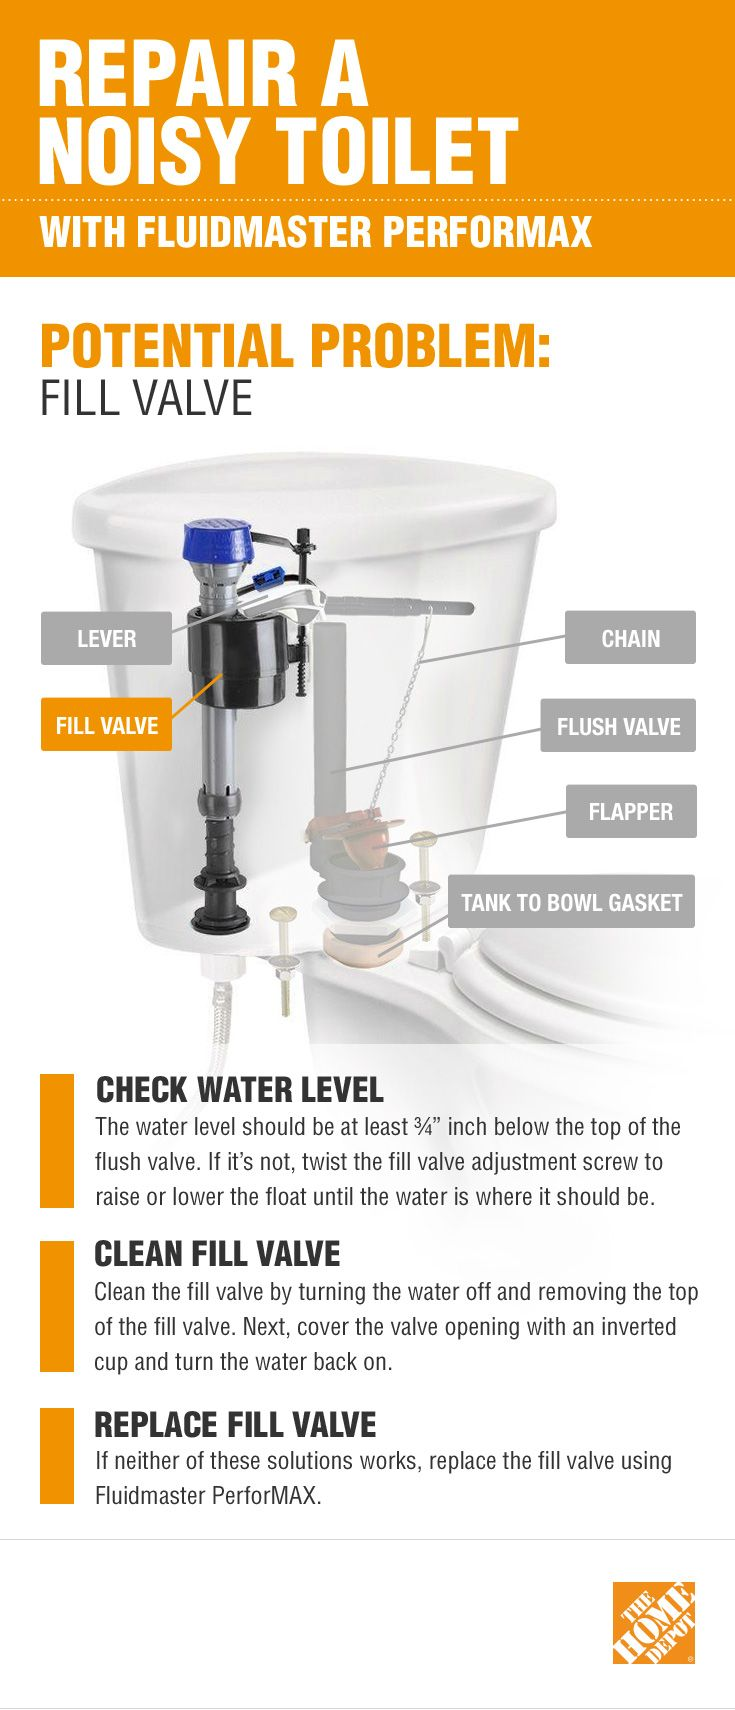 If Your Toilet Is Noisy The Problem May Be The Fill Valve Check The Water Level Inside The Tank And Make Sure It S About Toilet Repair Repair Home Repair